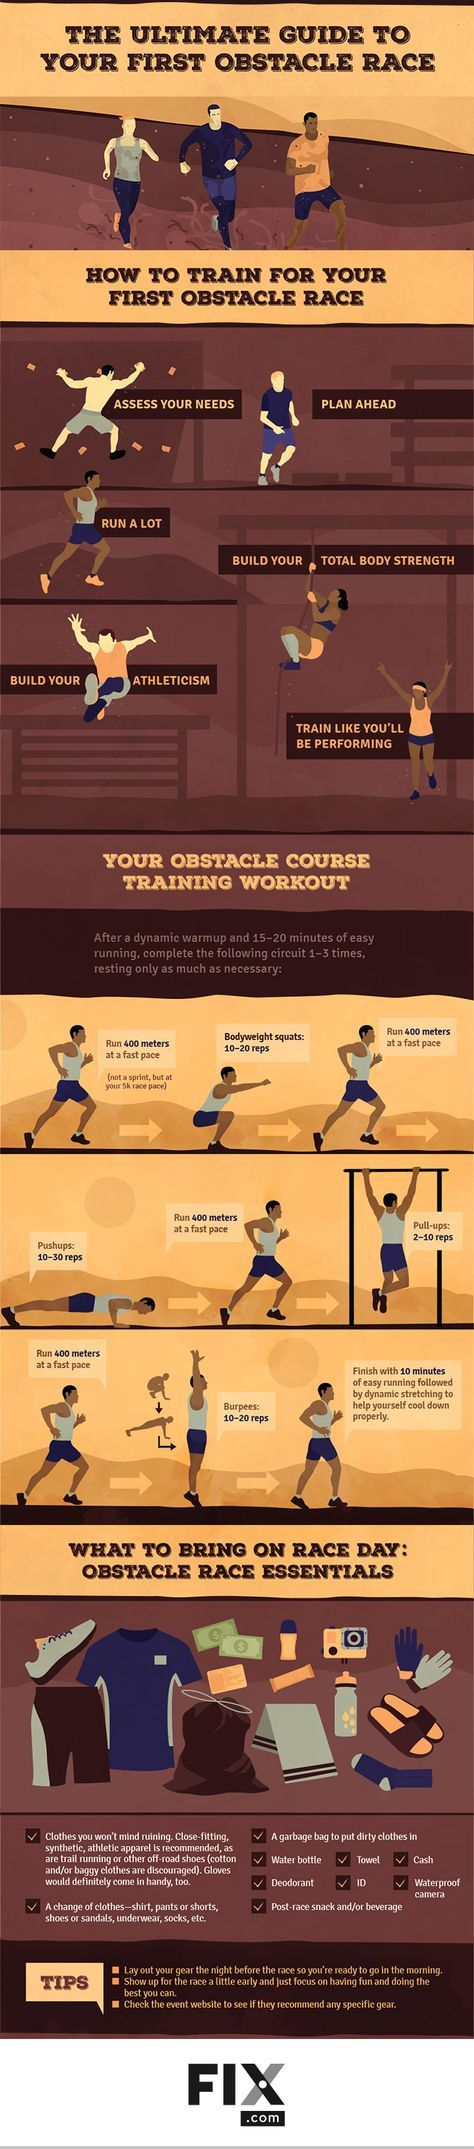 Training for your first obstacle race can seem overwhelming, but fear not! Fitness expert Jason Fitzgerald has your ultimate guide to your first obstacle race! #running #obstaclerace